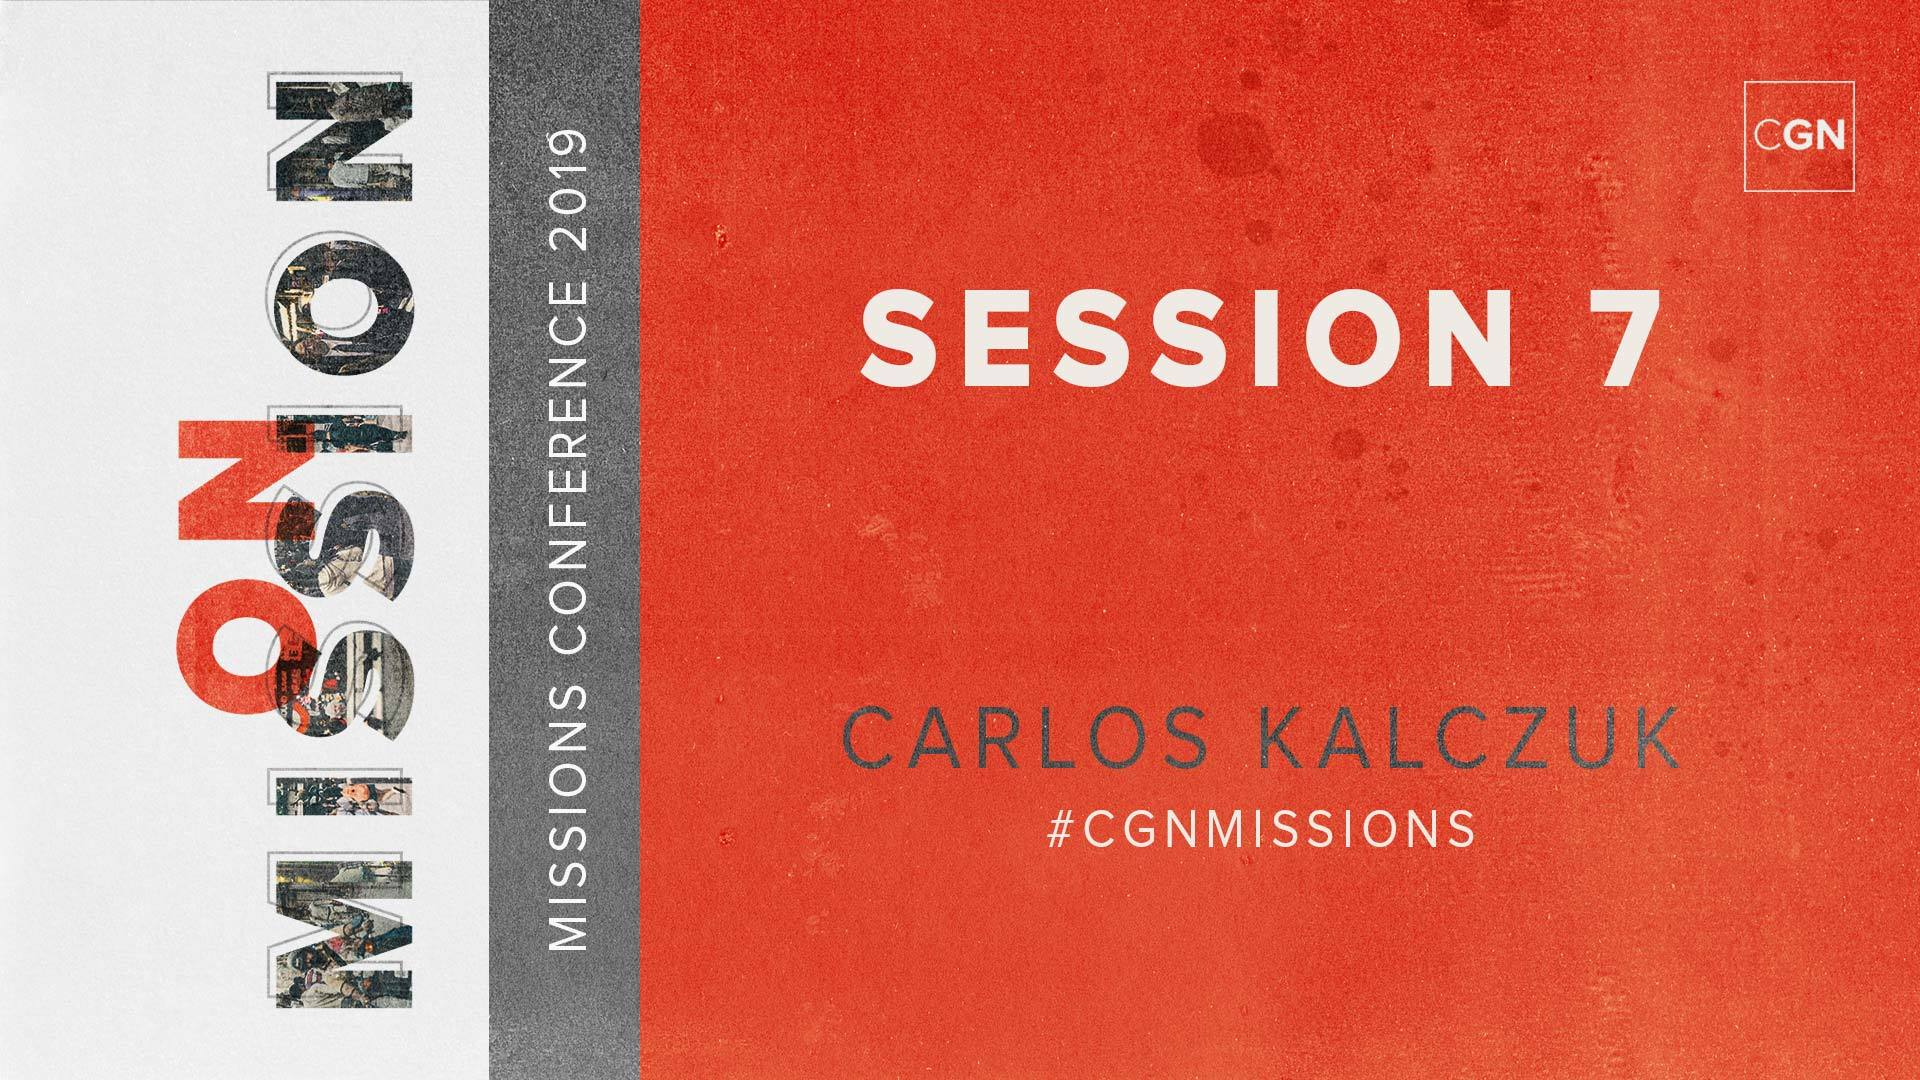 Session #7 - Carlos Kalczuk